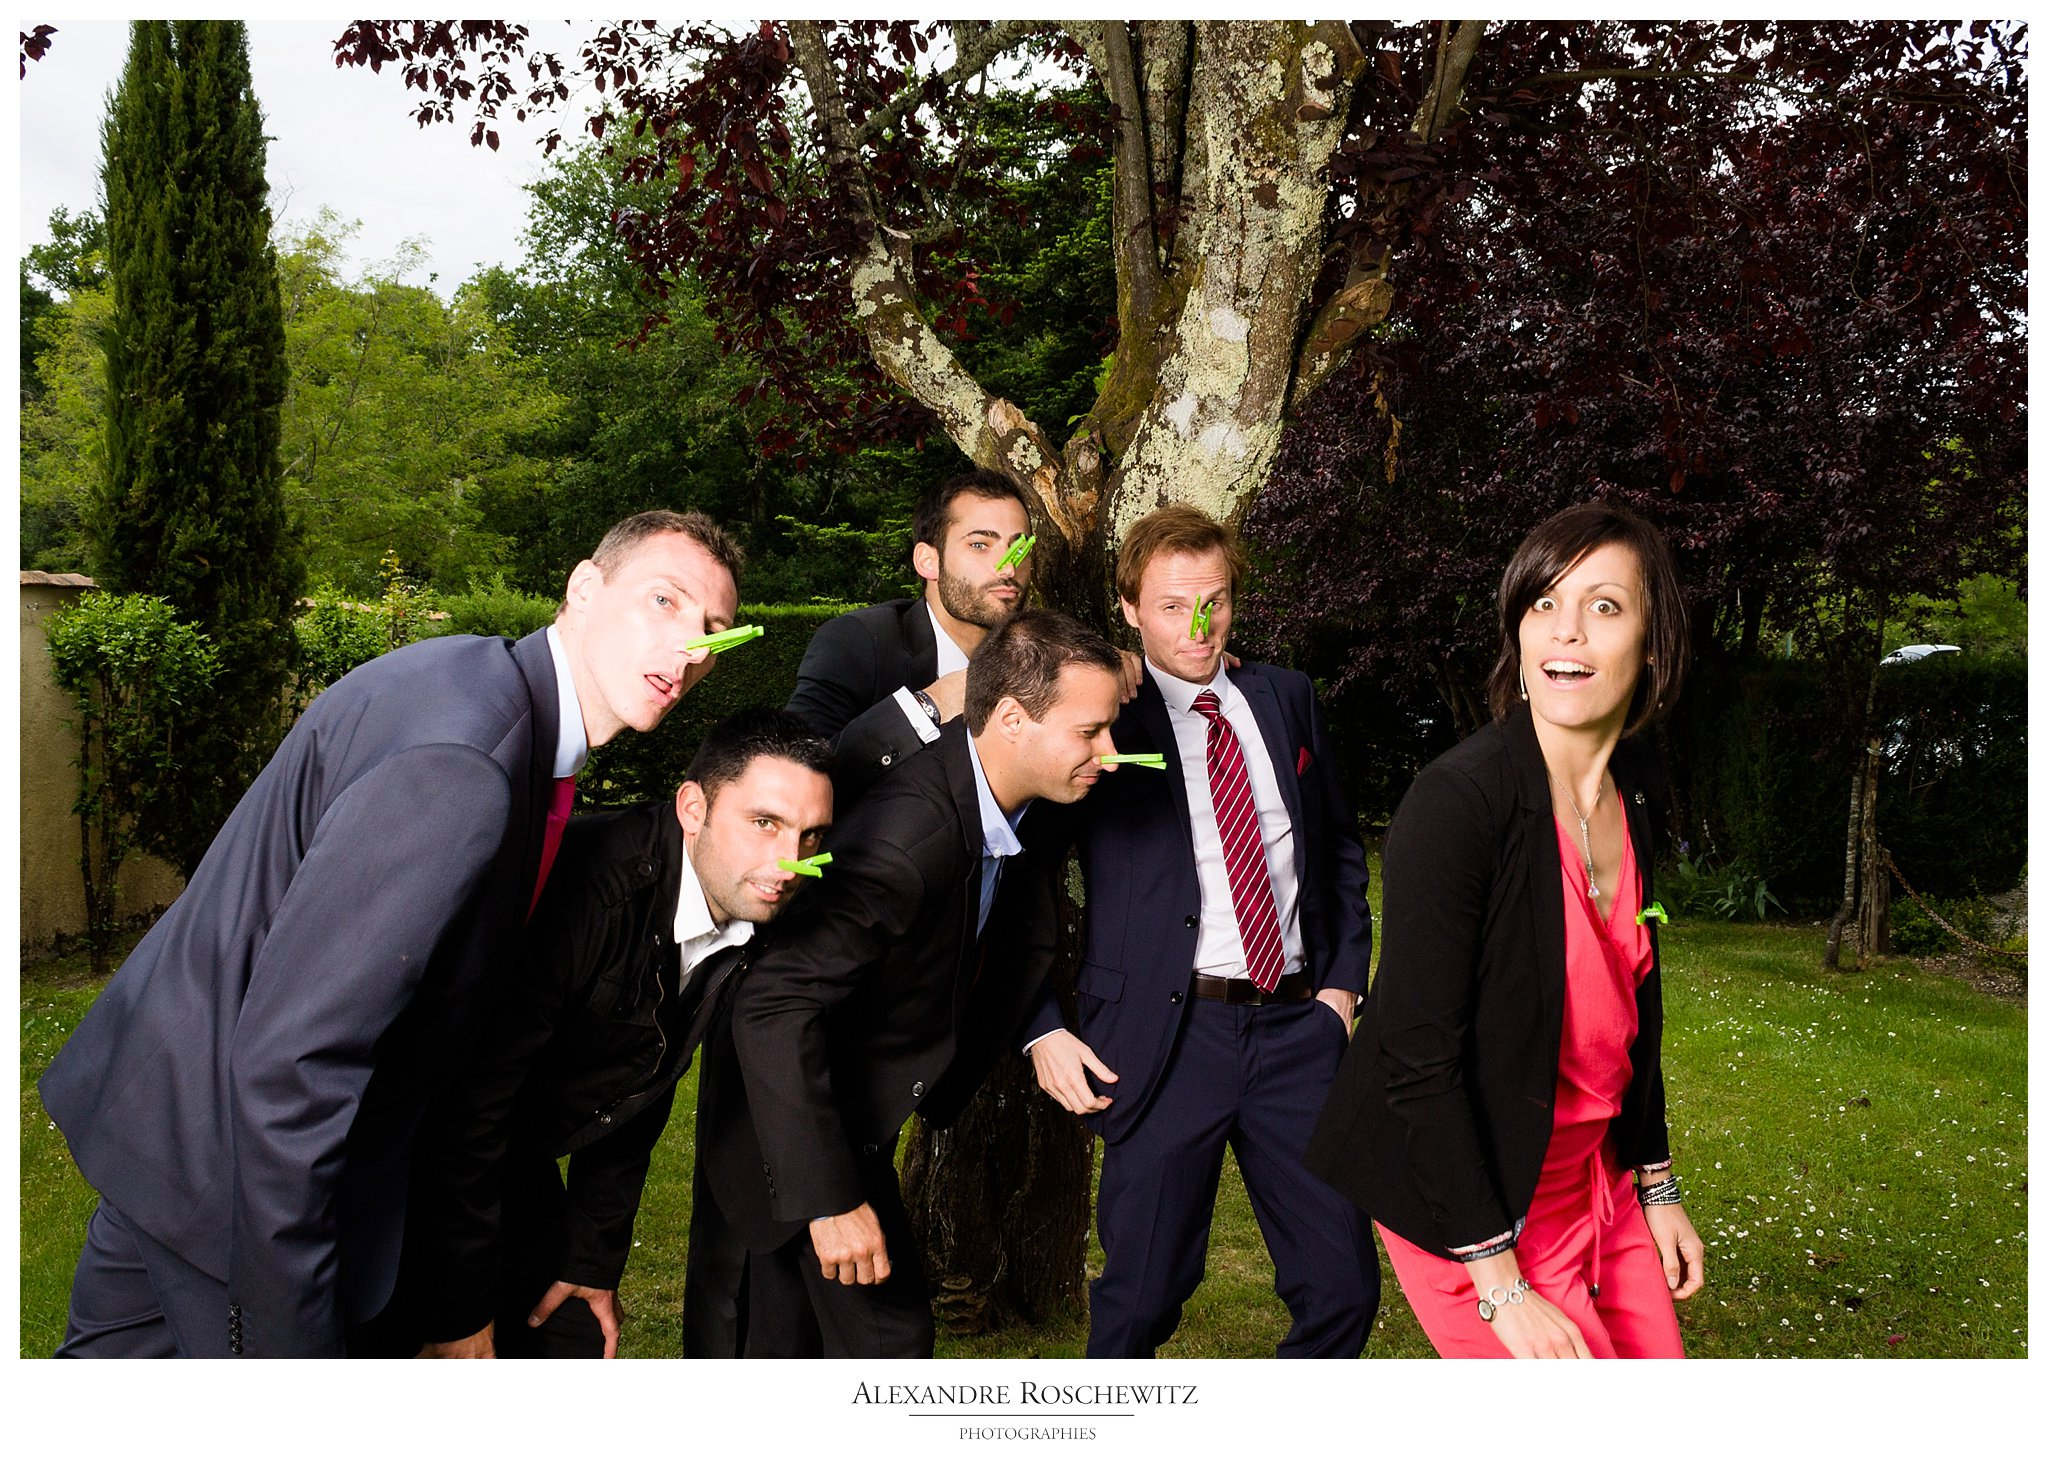 photobooth-mariage-merignac-gironde-maud-anthony-chateau-cujac-alexandre-roschewitz-photographies_1215_2048px